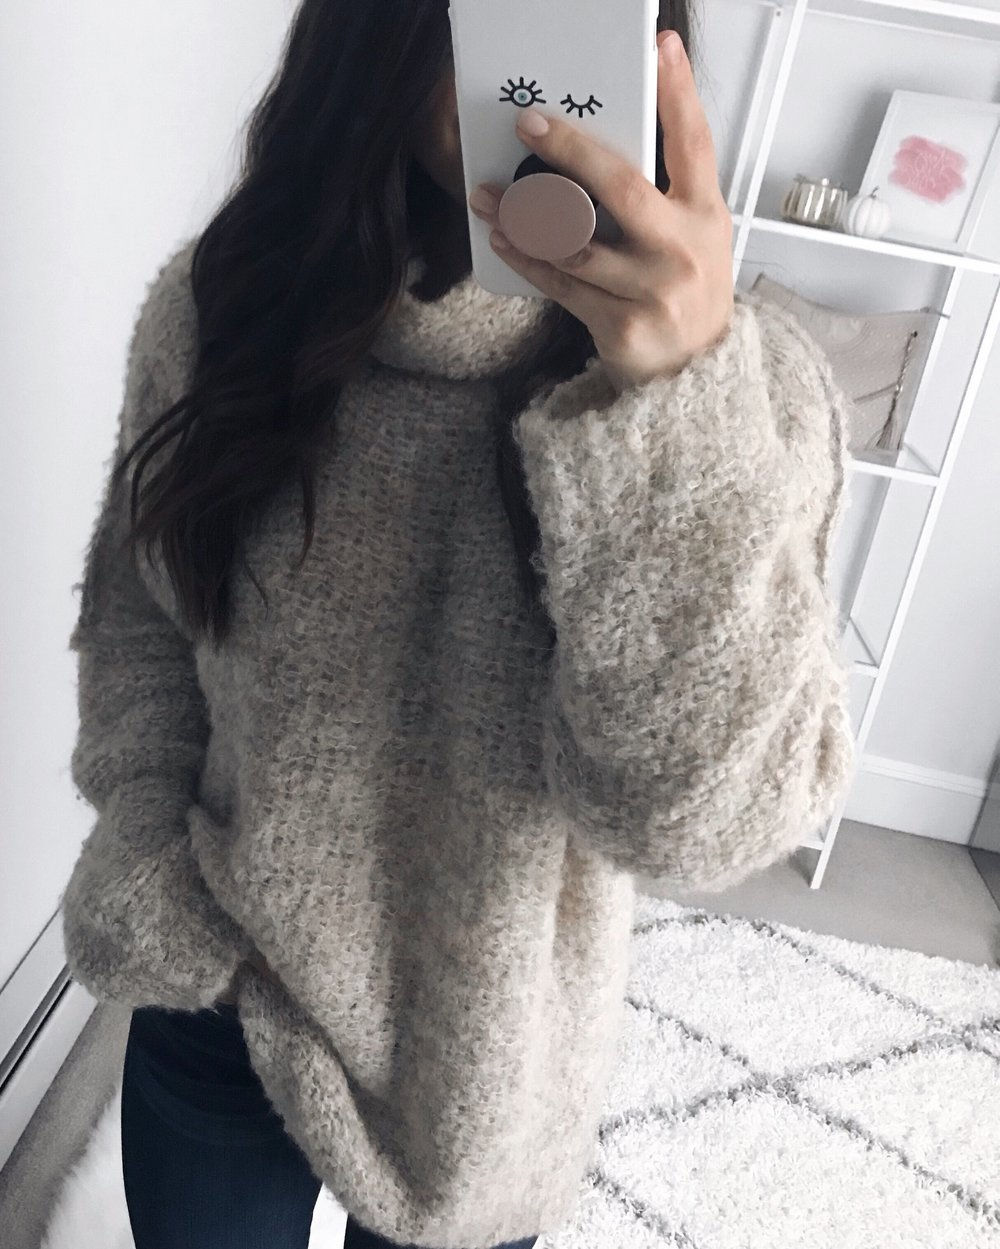 fall fashion / fall outfit idea / fall outfit inspiration / fall feels / fall vibes / sweater weather / cozy turtleneck